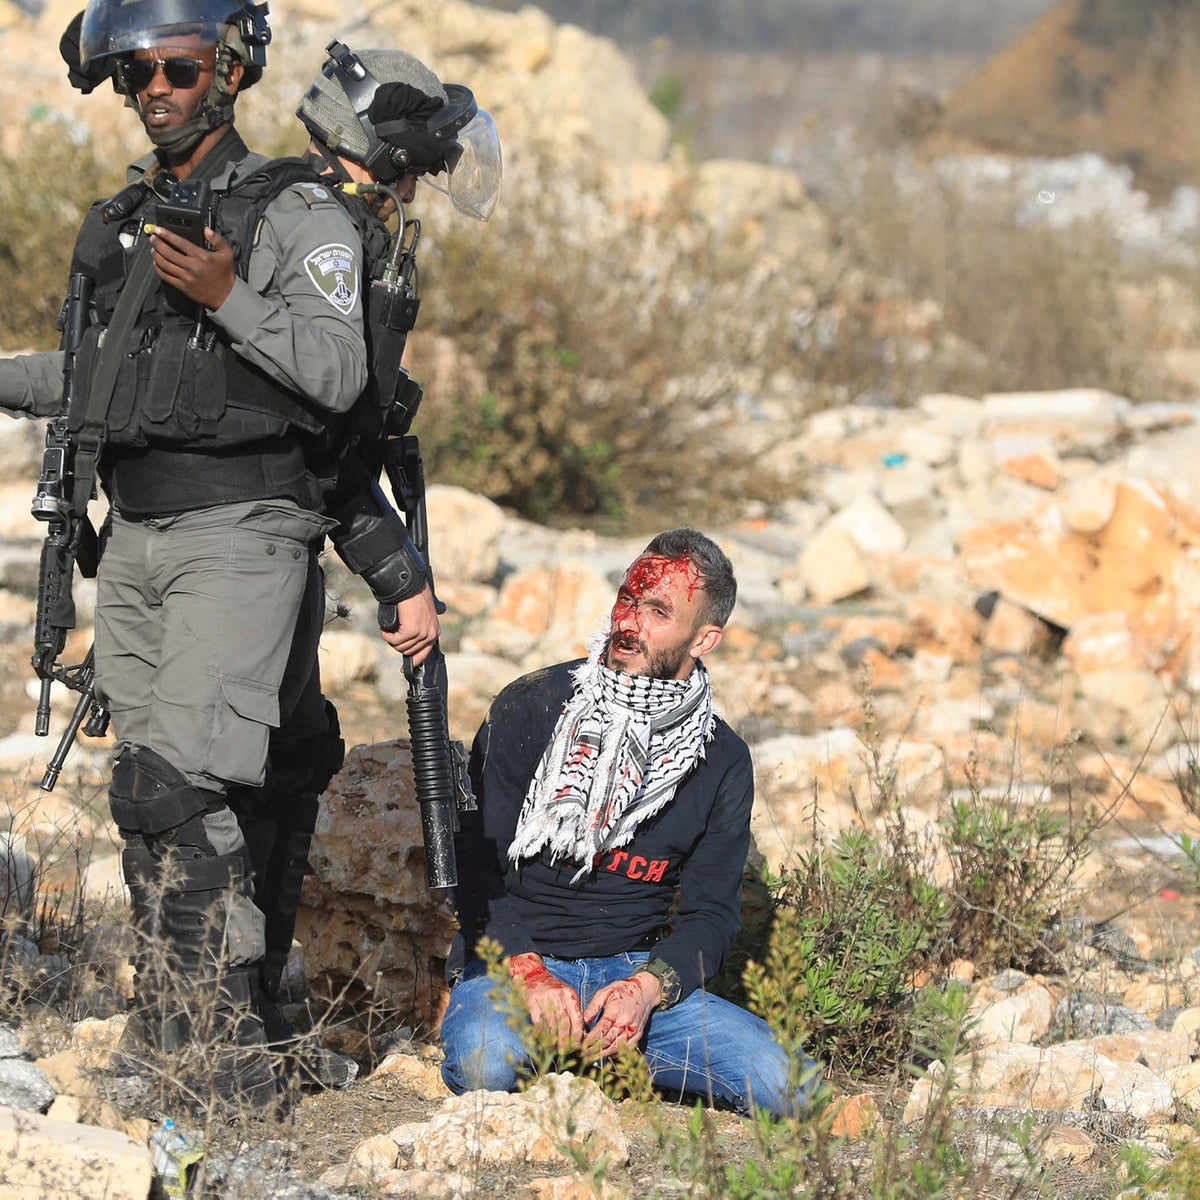 Israeli forces surround a wounded activist, Fadi Washaha, during a protest against Israeli army attacks on Gaza, at the Beit El checkpoint in Ramallah, in November 2019.